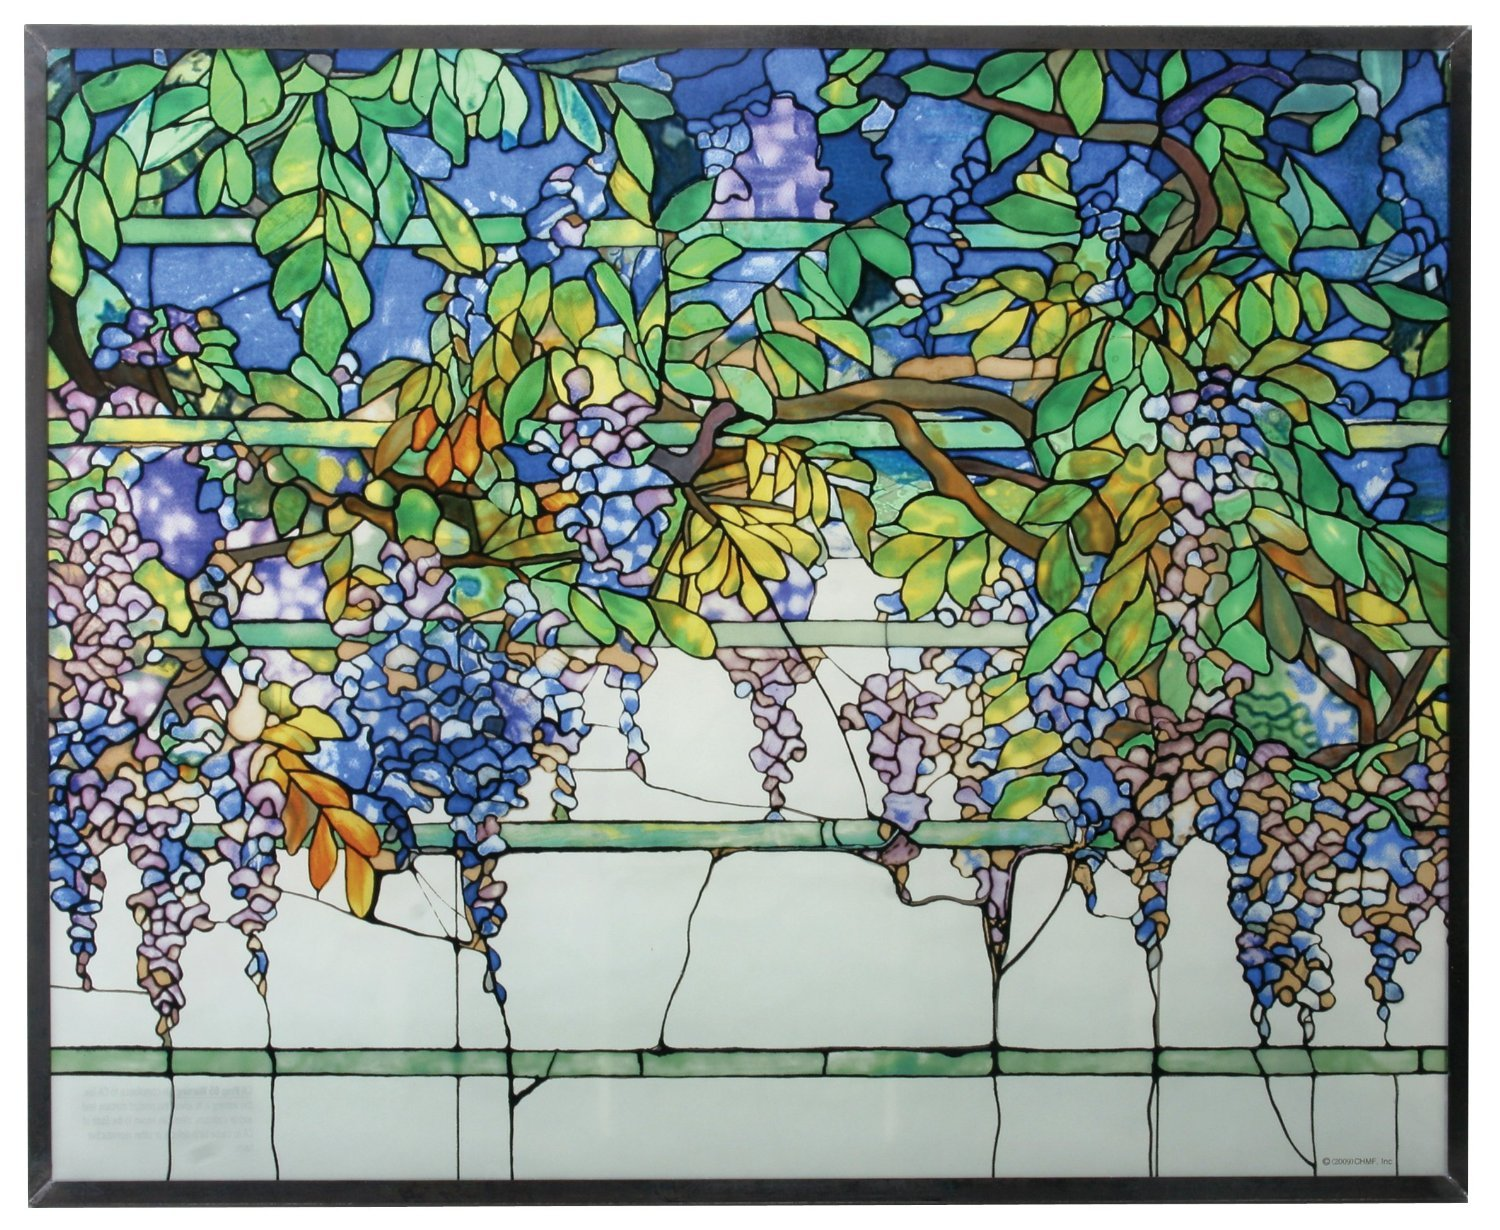 Tiffany Wisteria Art Glass Panel - stained glass wall art